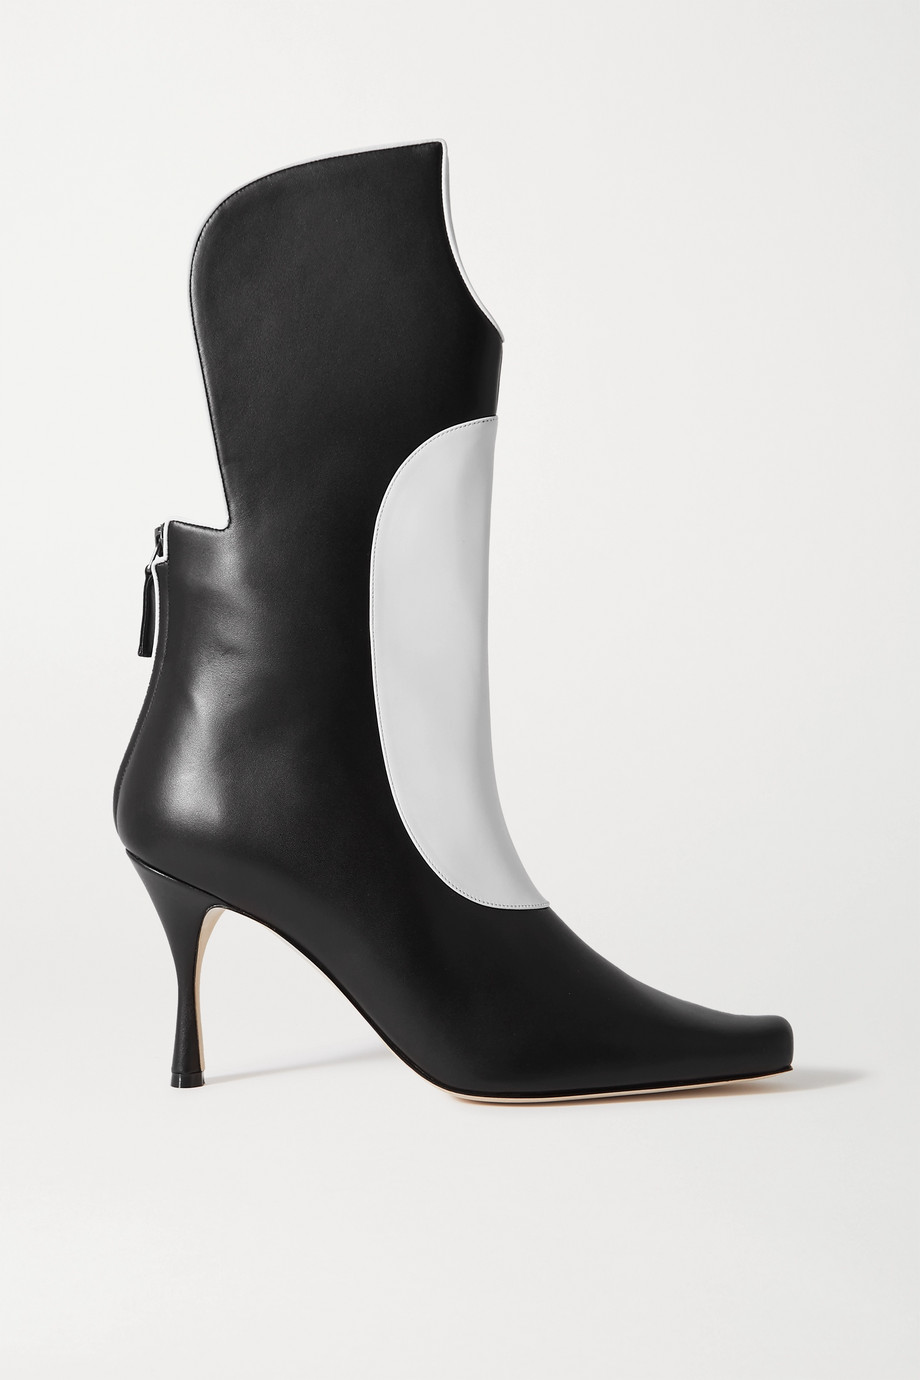 Manolo Blahnik Sambona two-tone leather boots